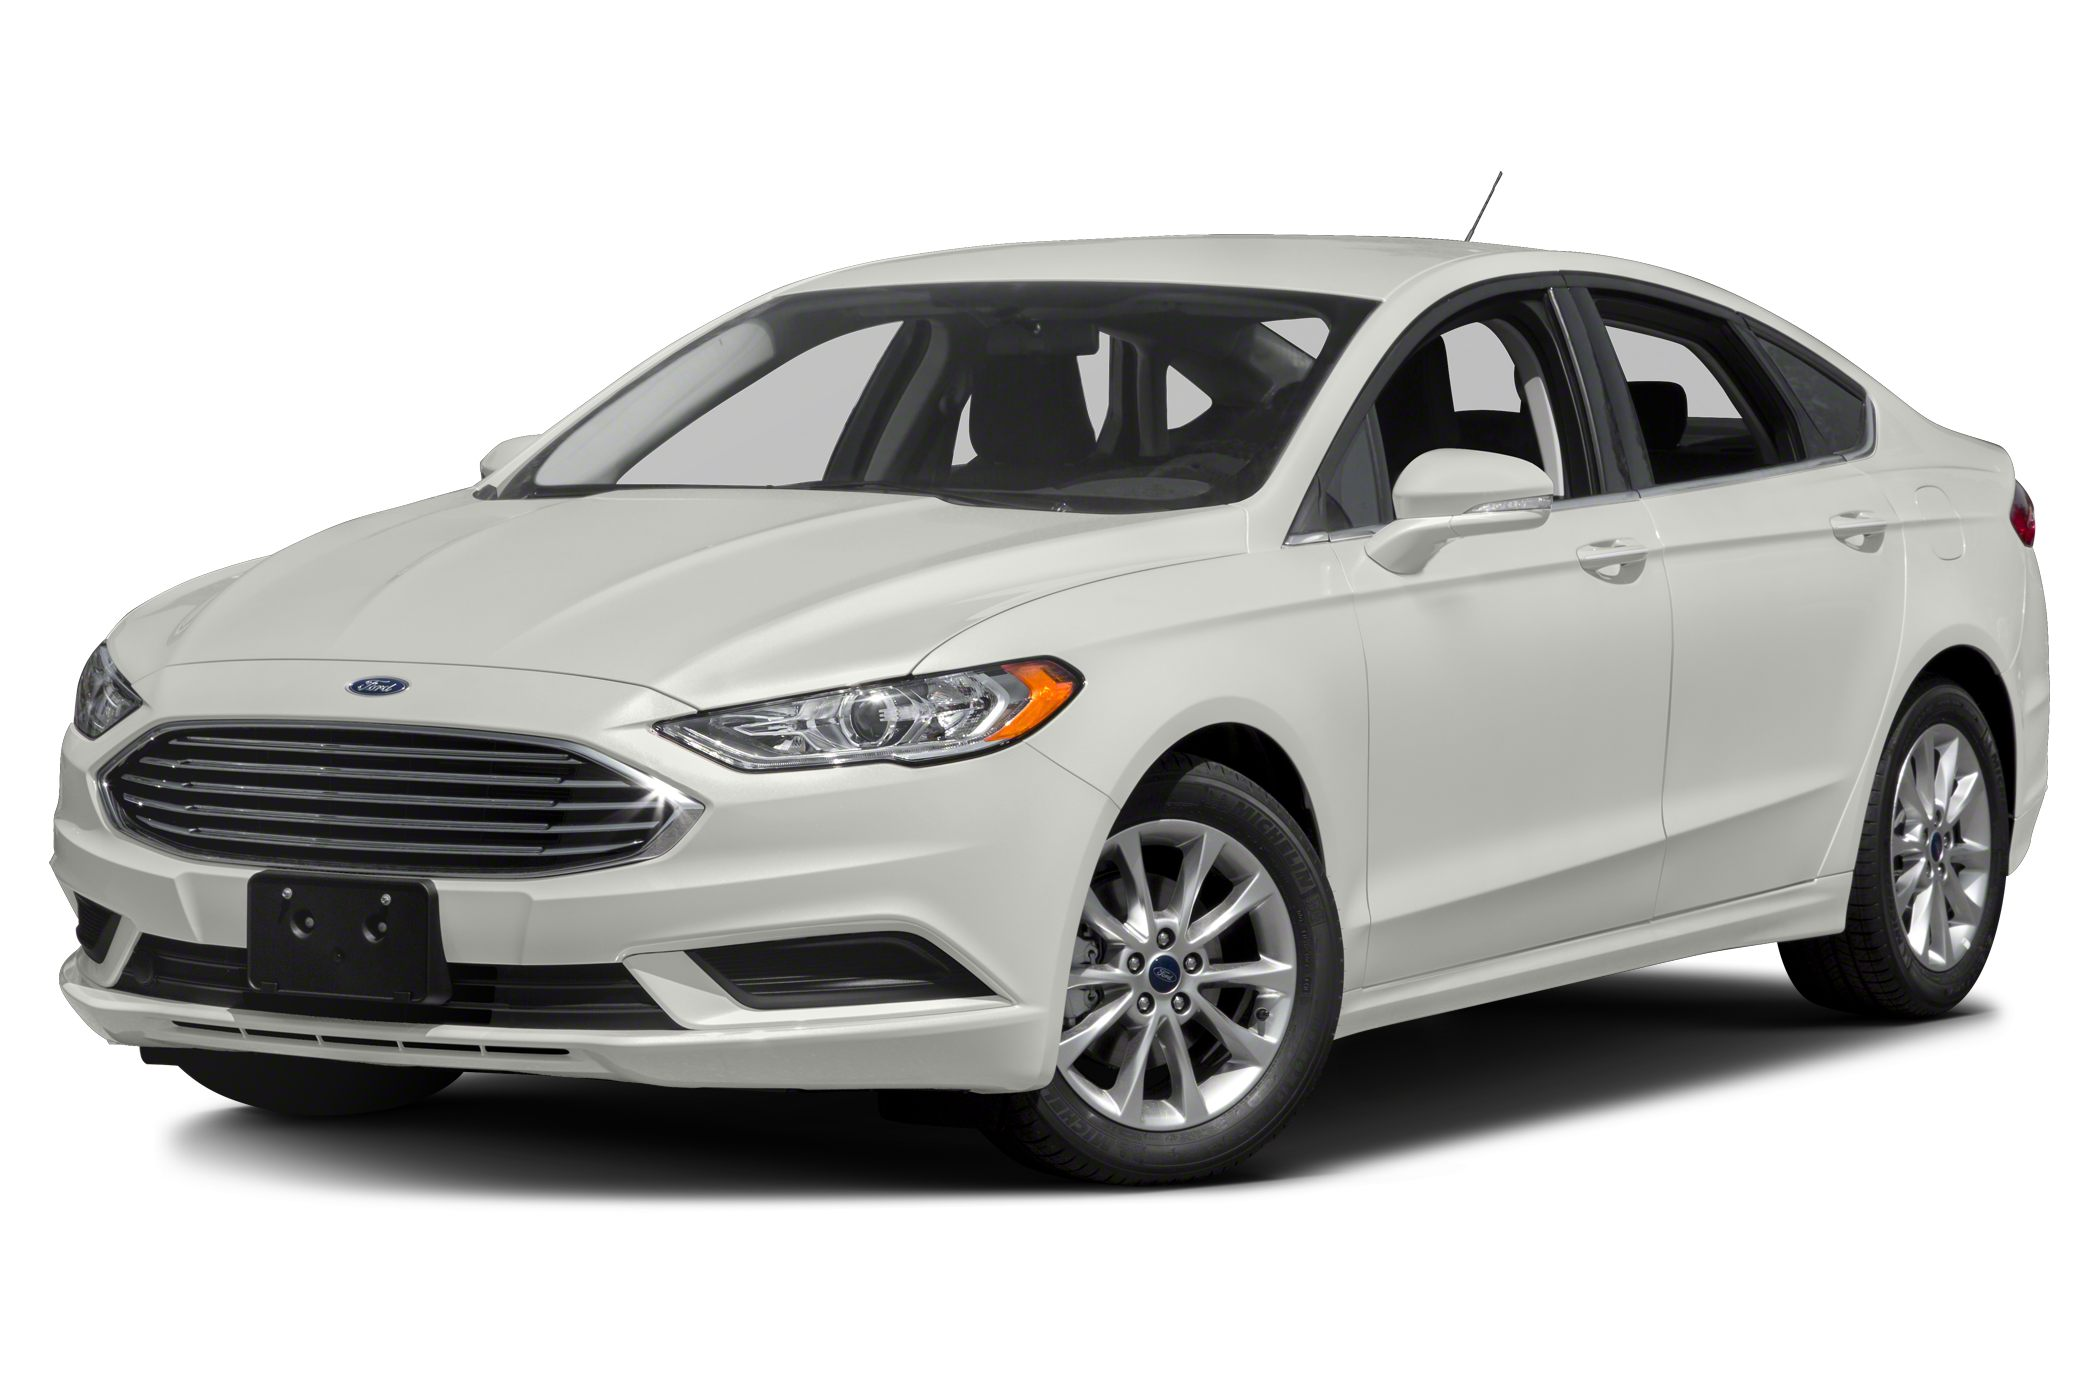 2017 Ford Fusion SE 4dr Front wheel Drive Sedan